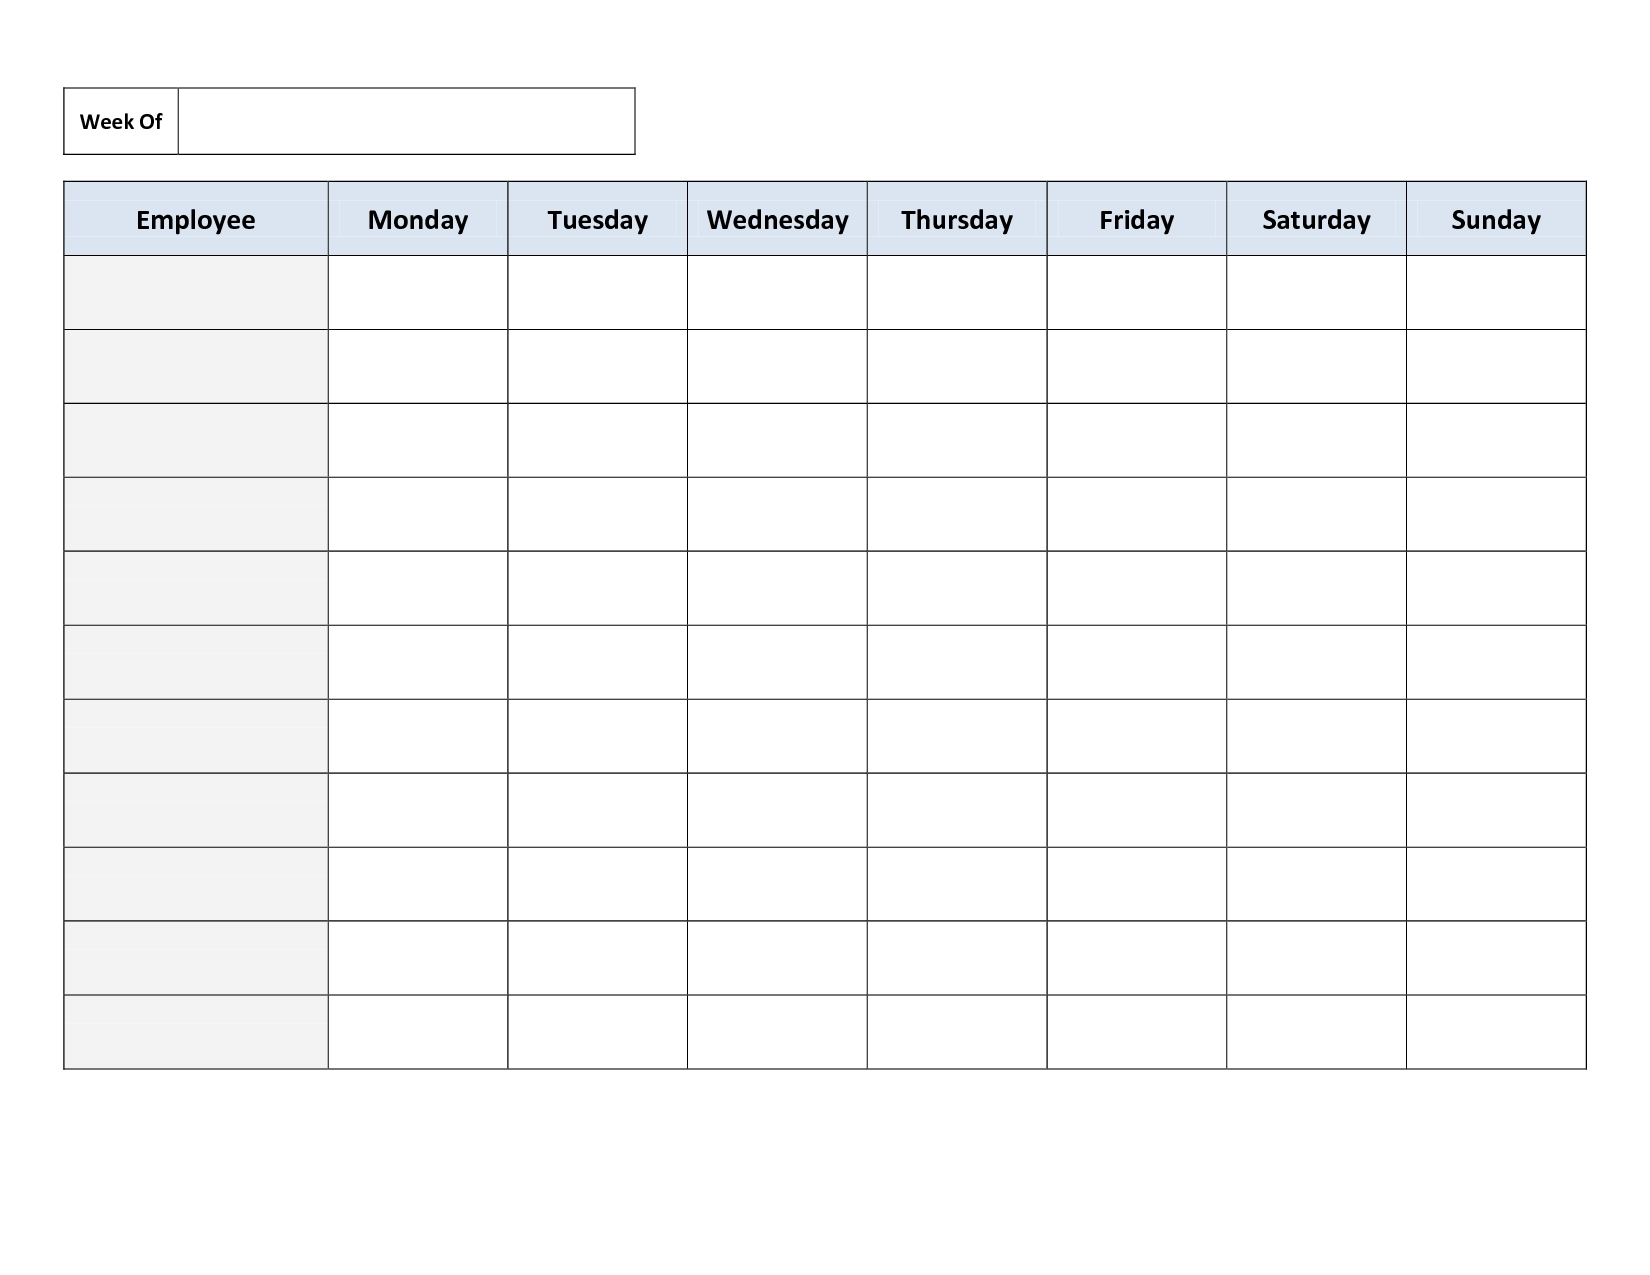 Free Monthly Work Schedule Template | Weekly Employee 8 Hour Shift - Free Printable Blank Work